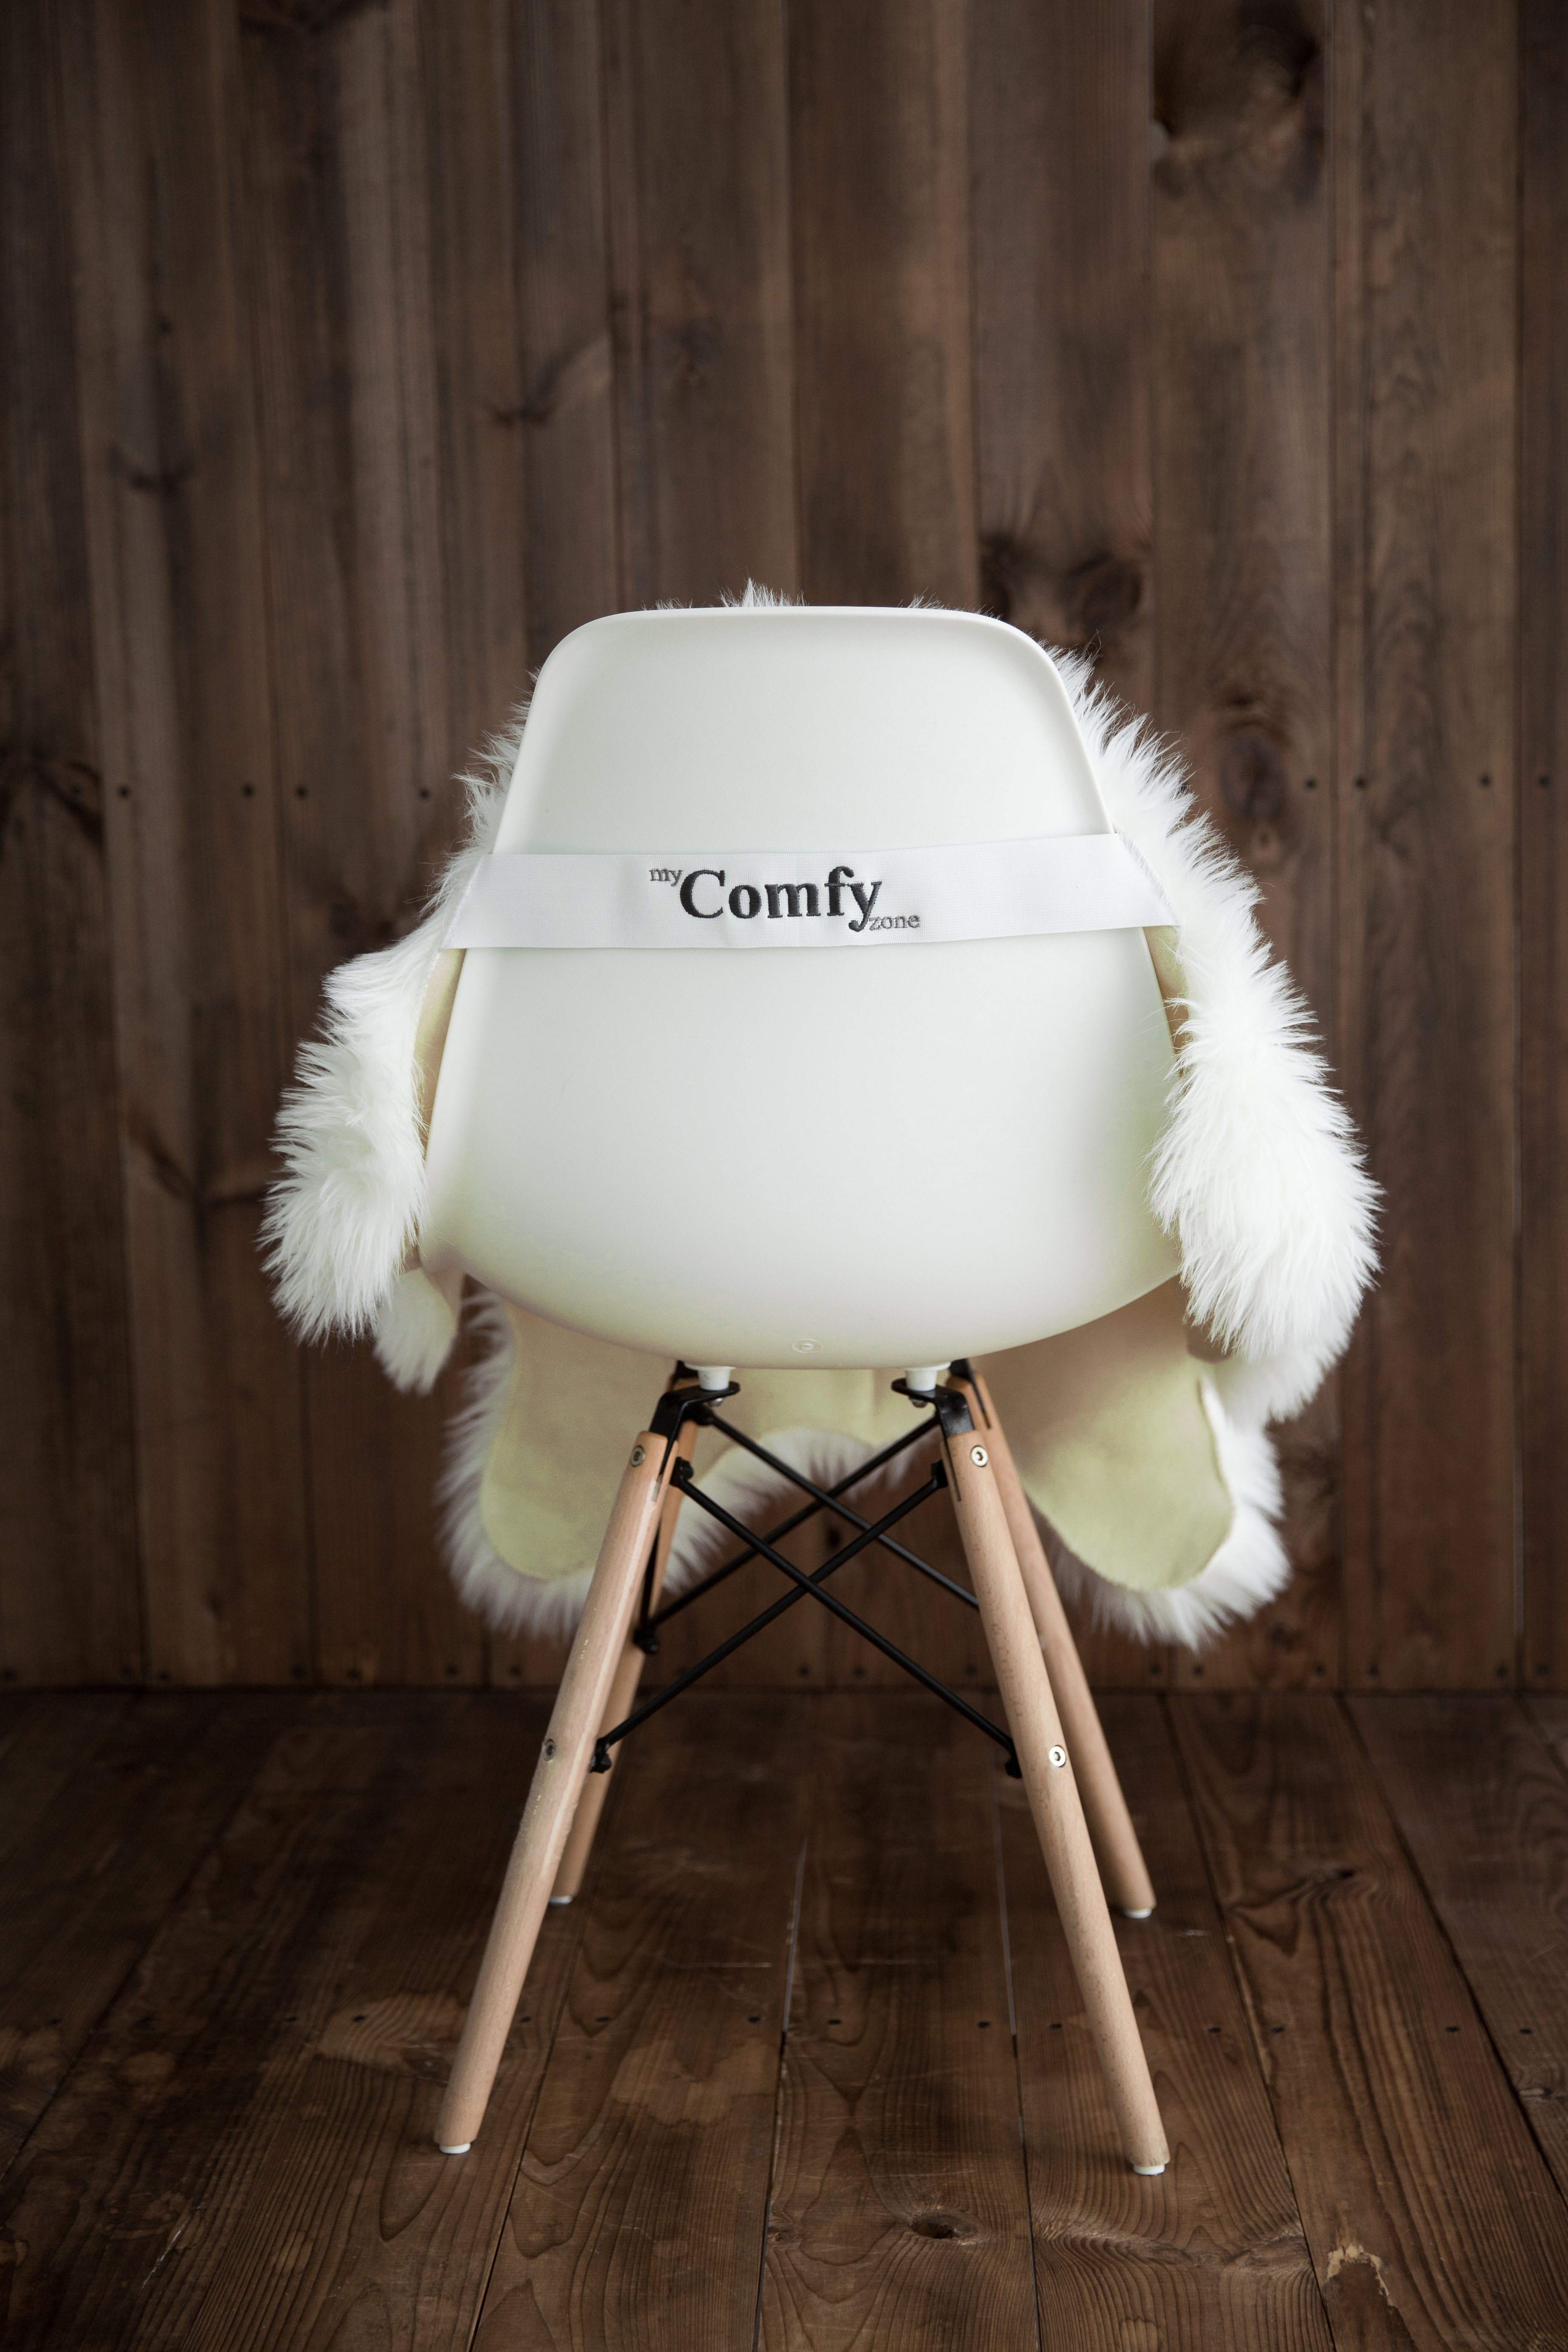 Sheepskin Faux Fur Chair Cover Rug Seat Pad Area Rugs For Bedroom